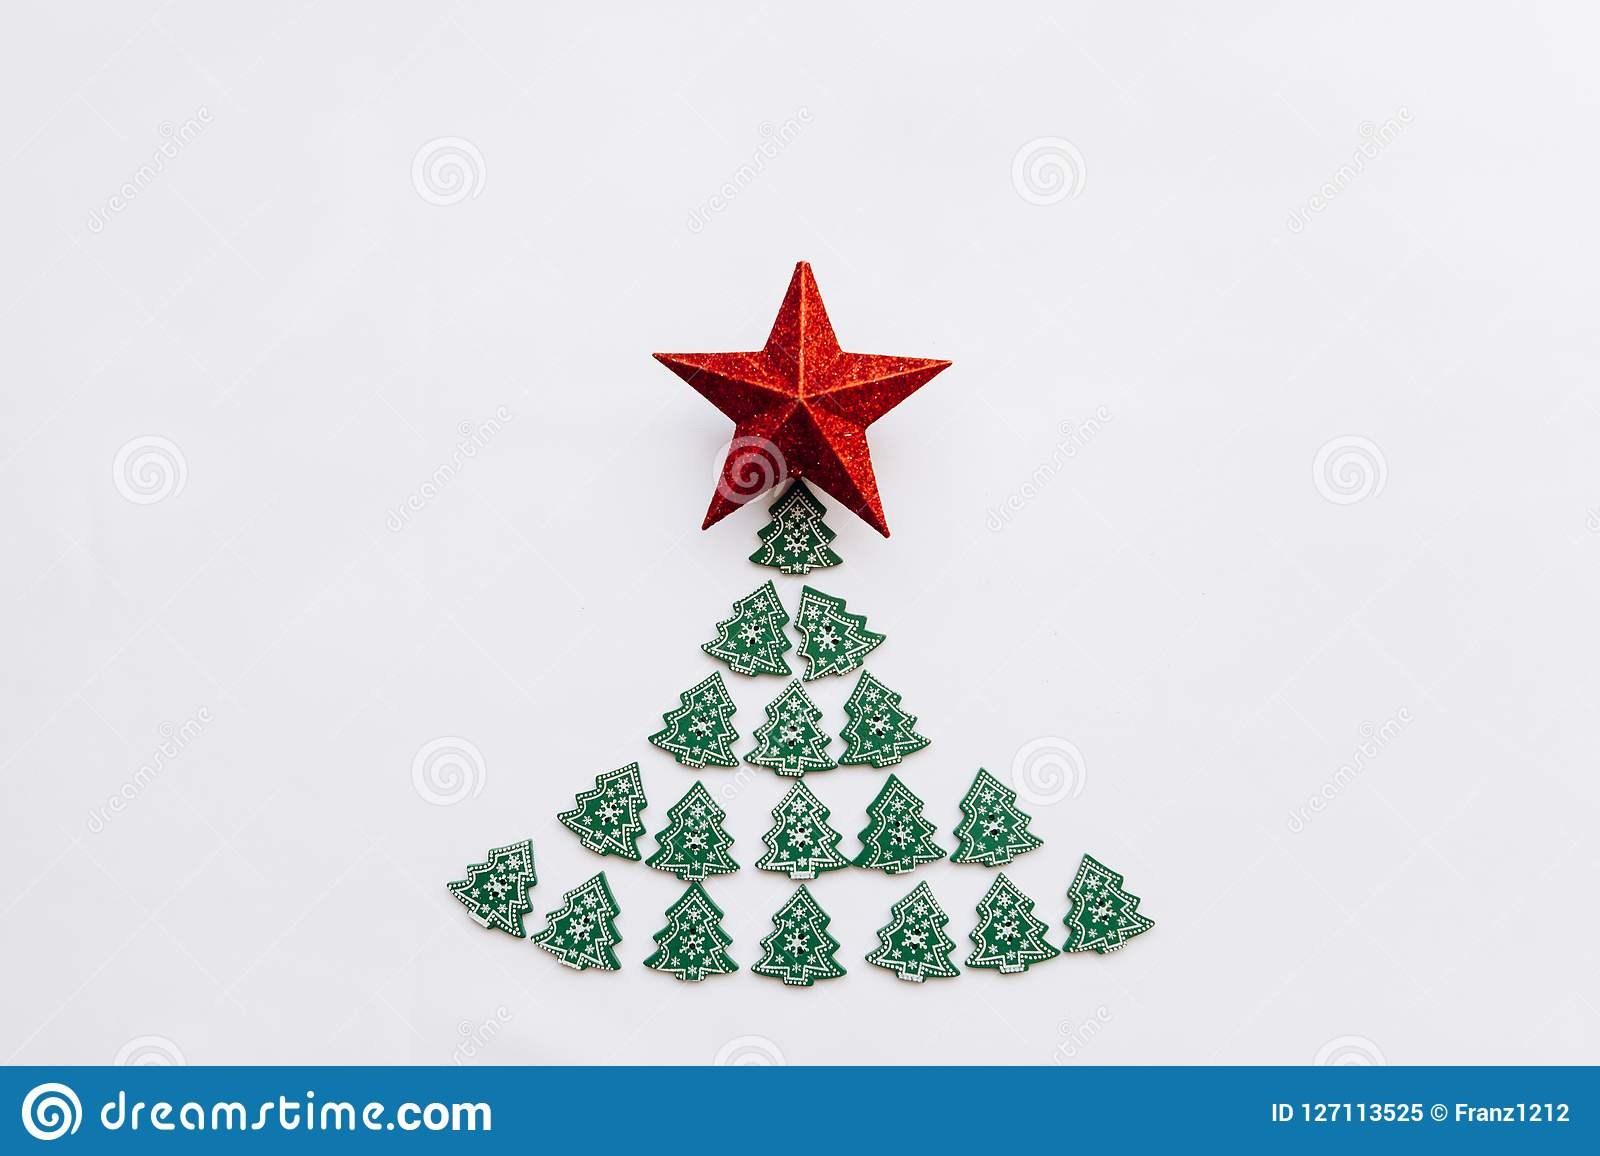 Christmas Tree From Other Small Wooden Christmas Trees And A Star On Top Stock Image Image Of Event Concept 127113525